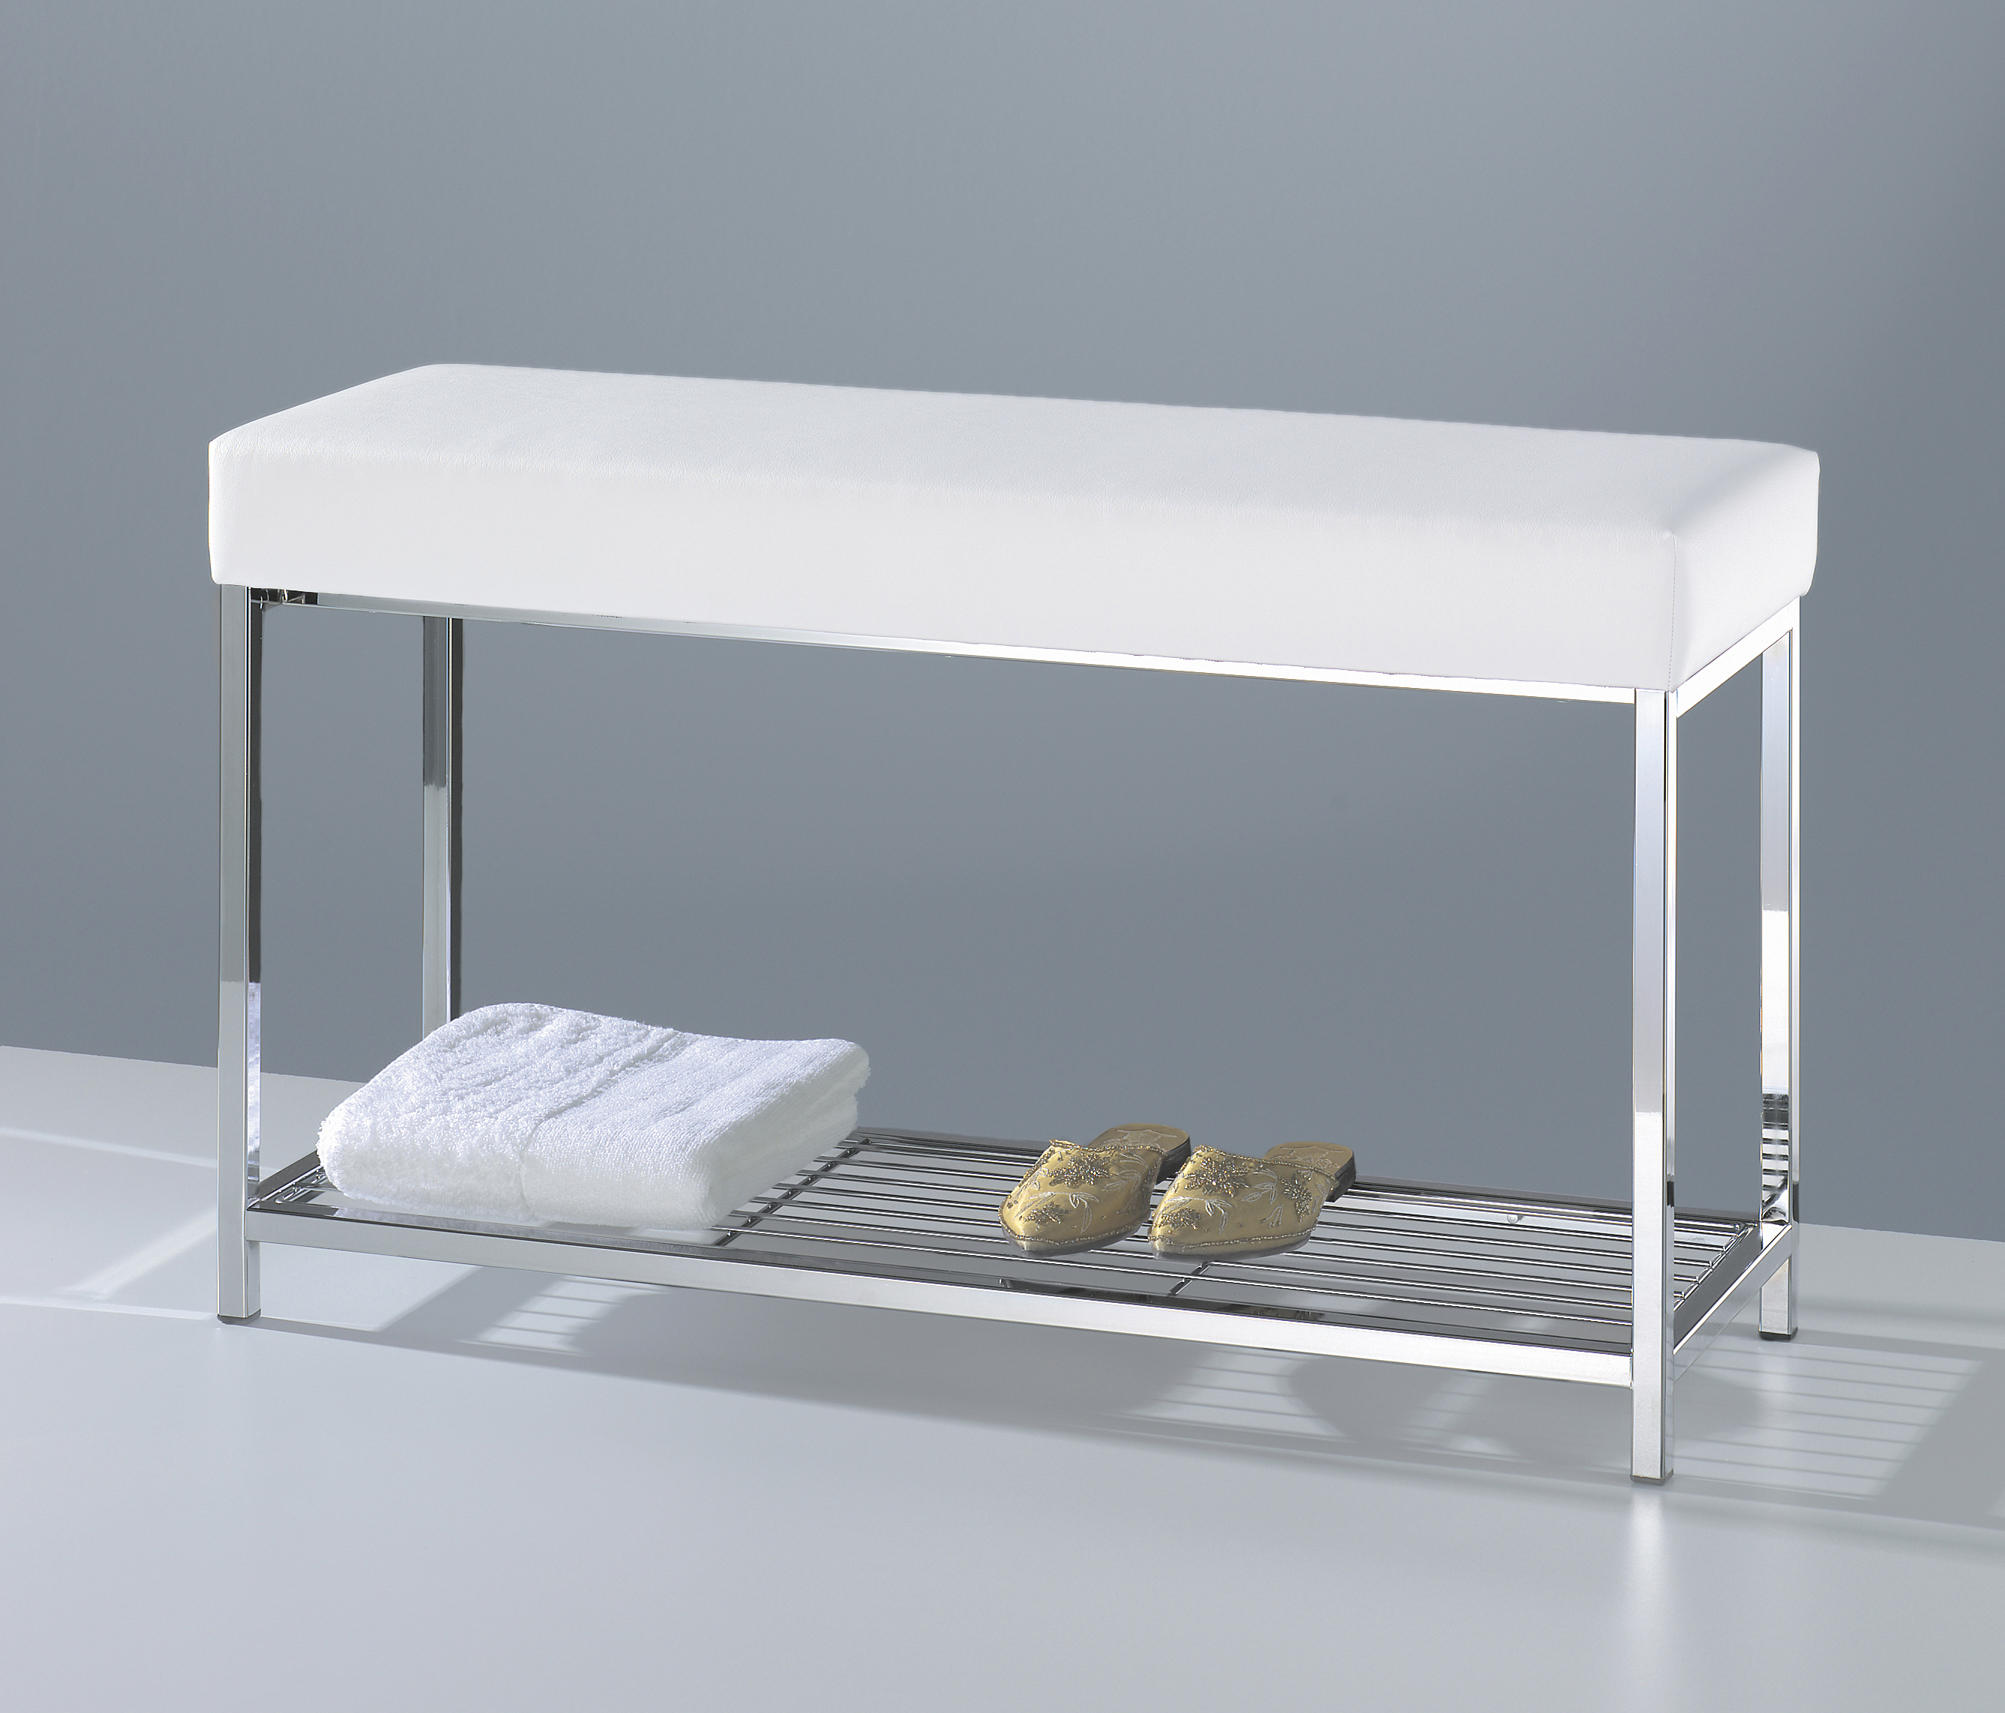 BATH STOOLS / BENCHES - High quality designer BATH STOOLS / BENCHES ...